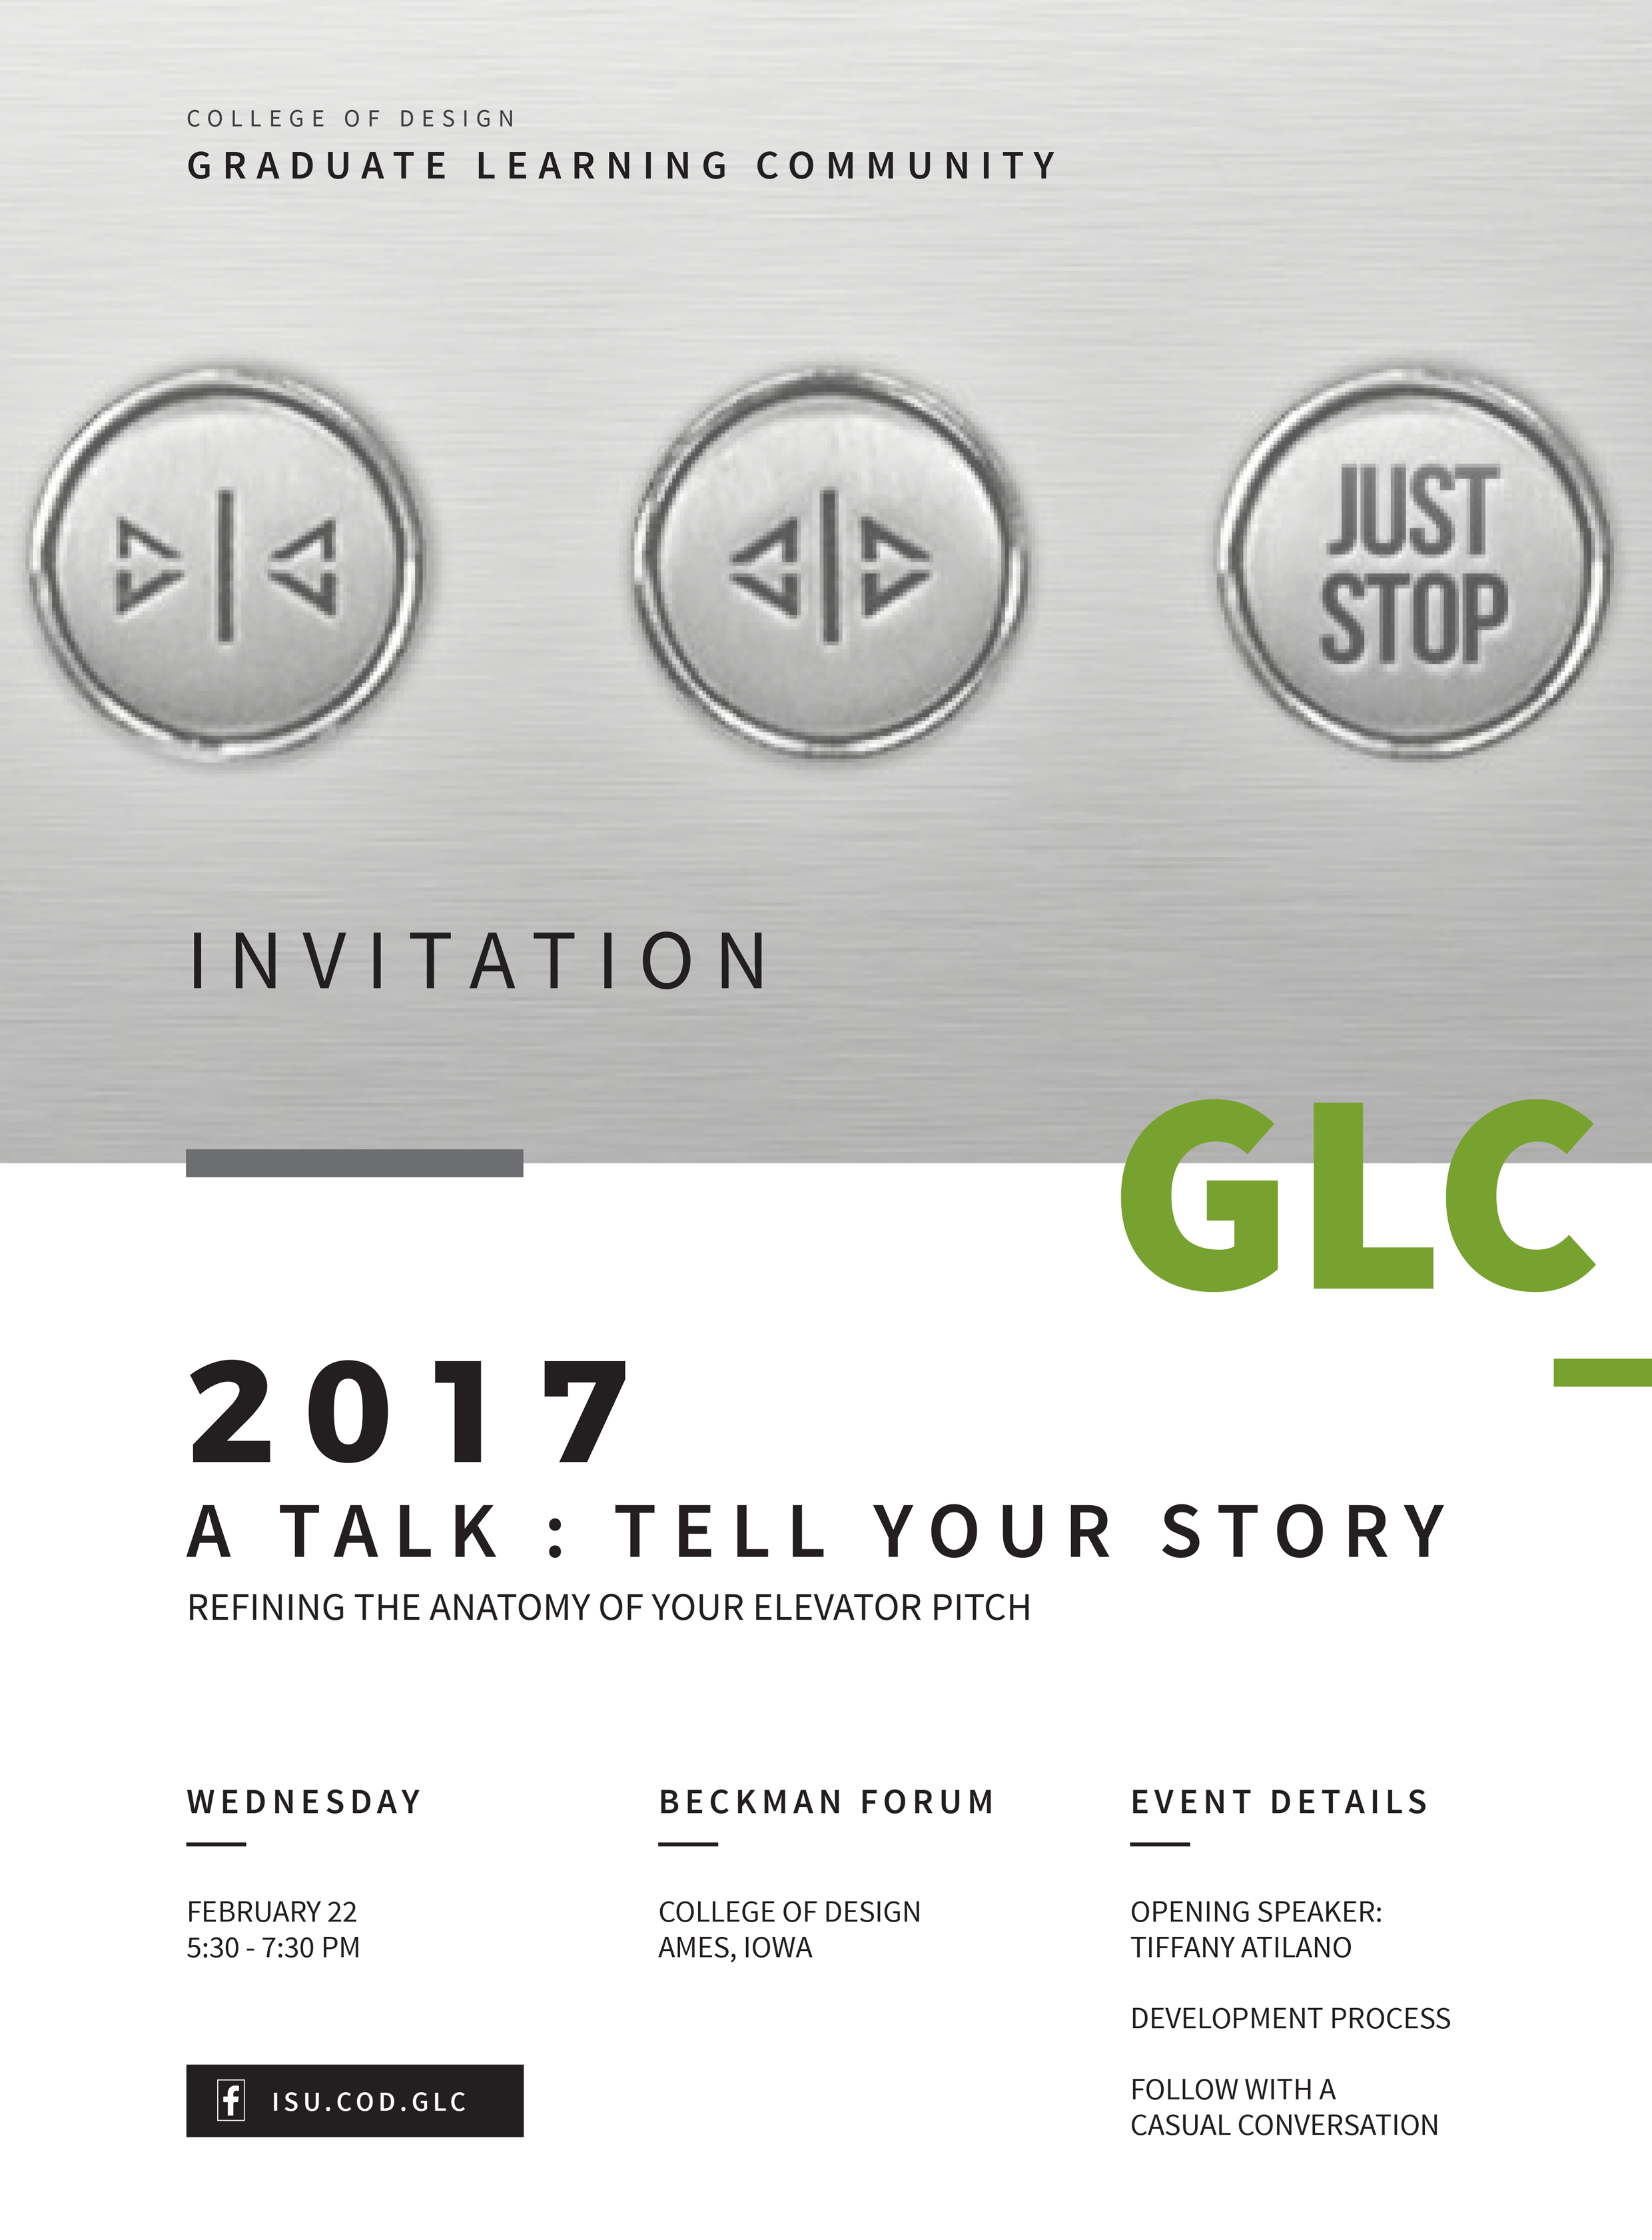 A Talk: Tell Your Story